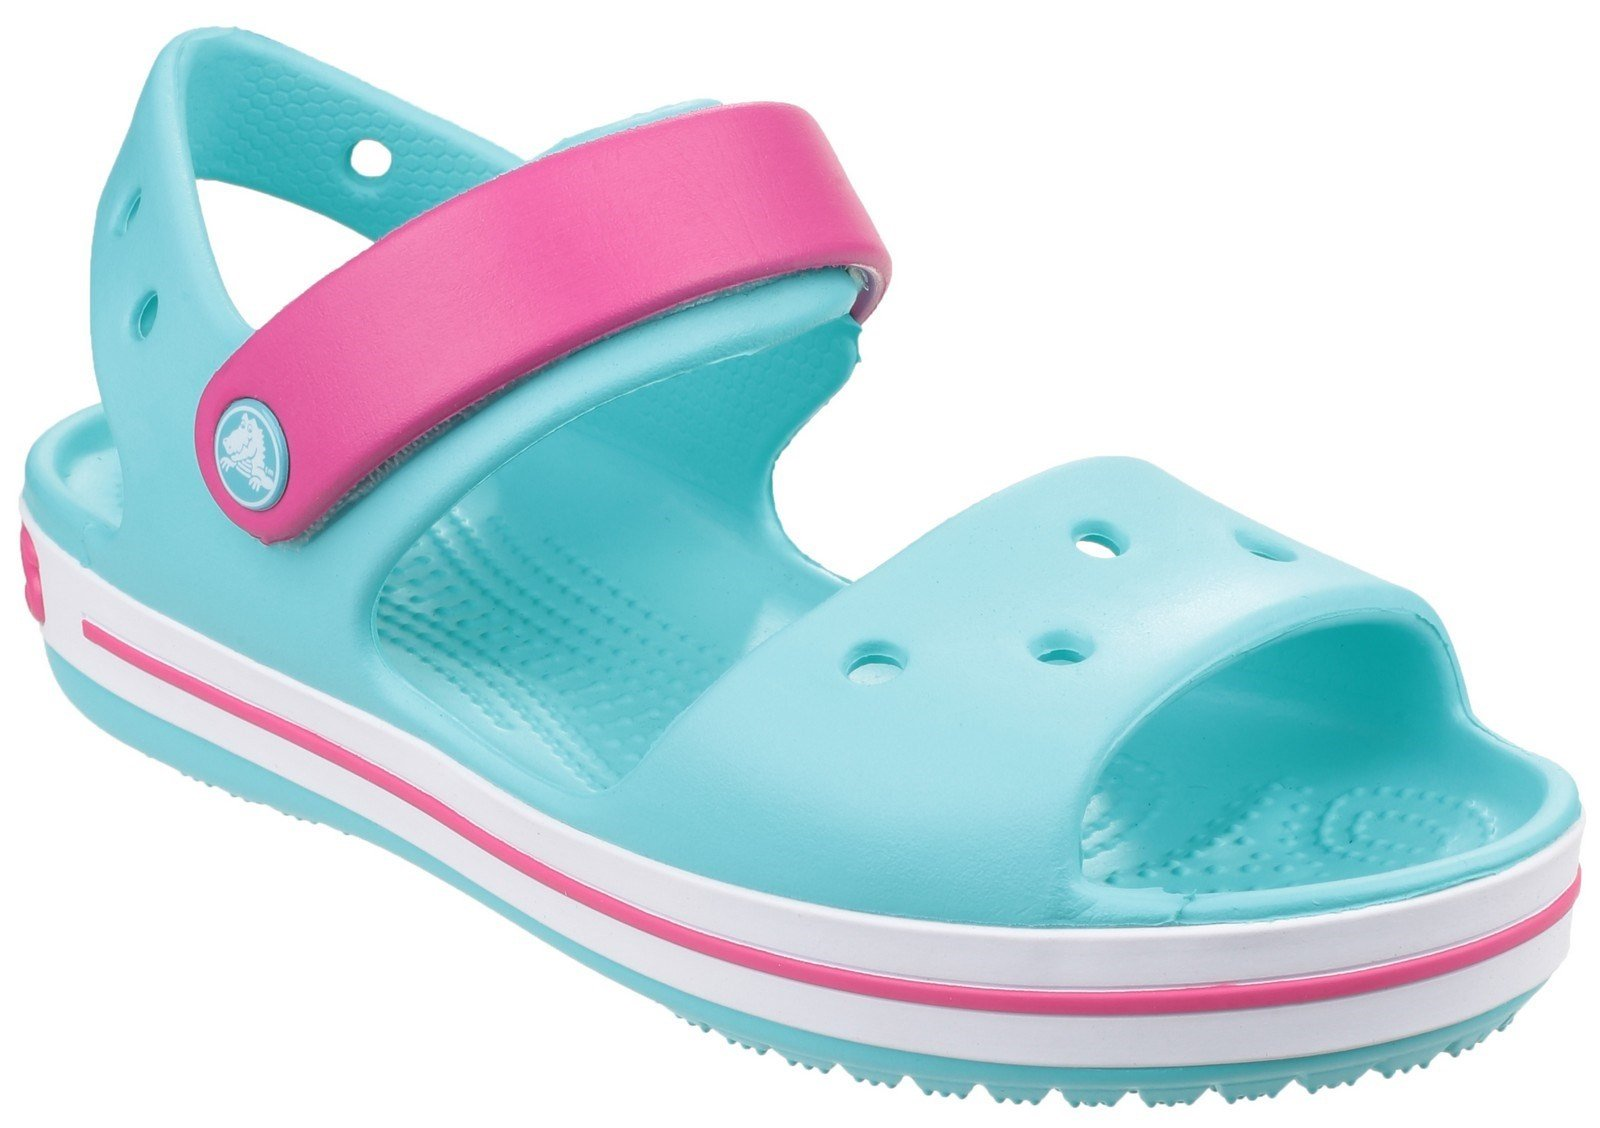 Crocs Kid's Sandal Various Colours 21077 - Pool/Candy Pink 5